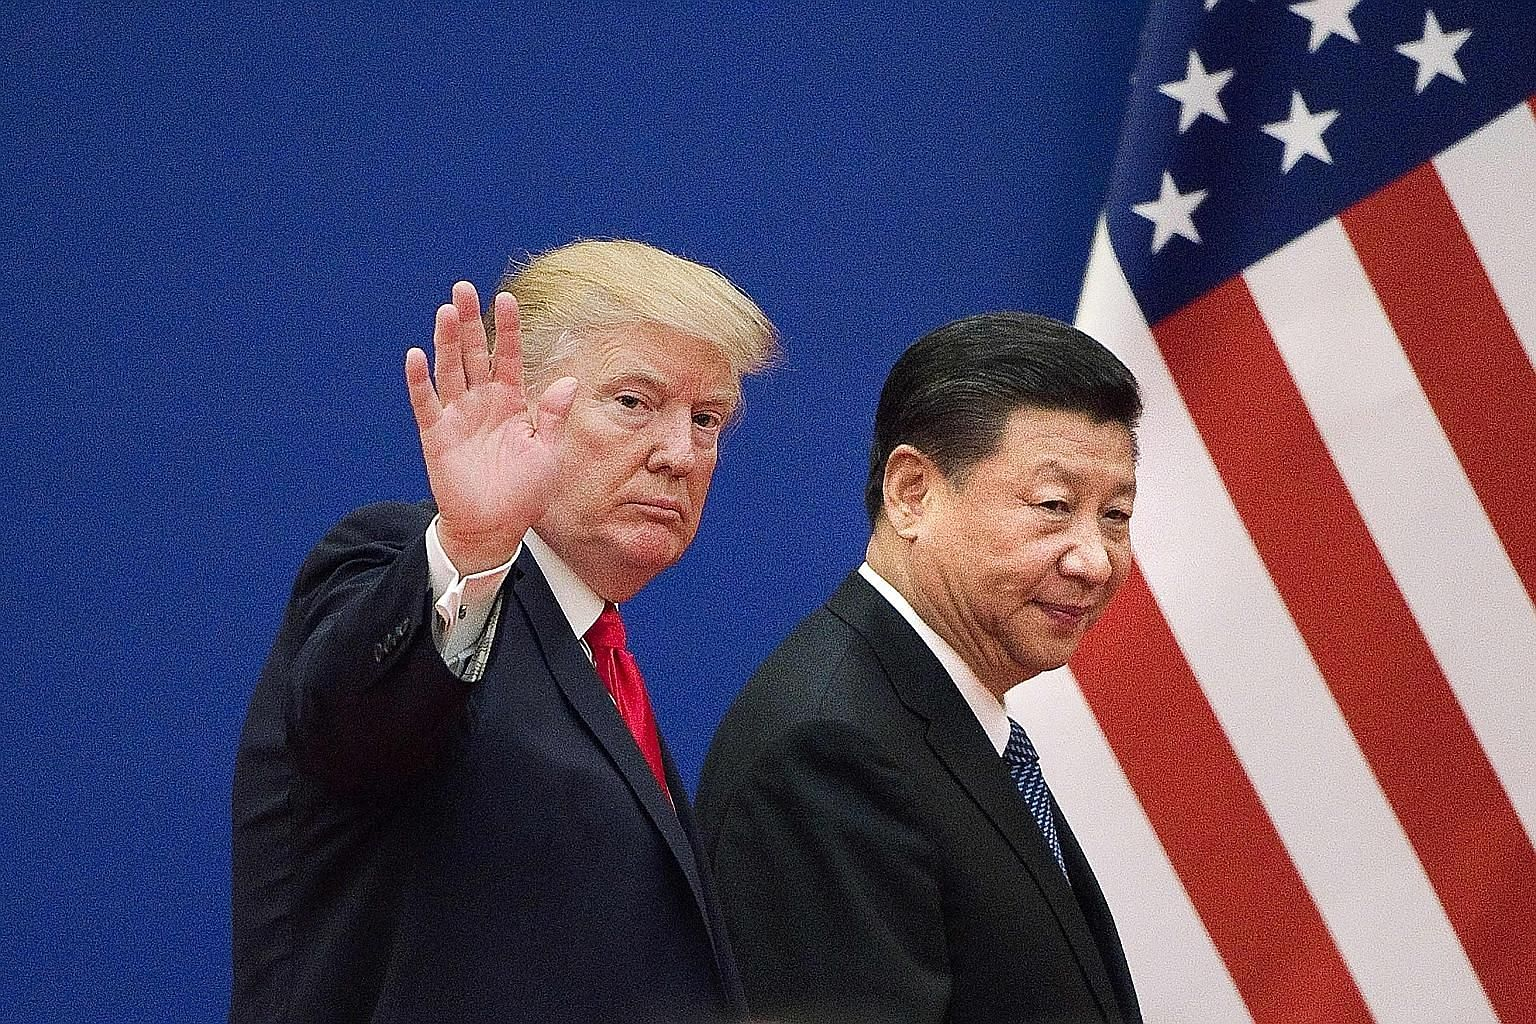 US President Donald Trump has offered to push back a summit with Chinese President Xi Jinping until a final agreement on a trade deal is reached.